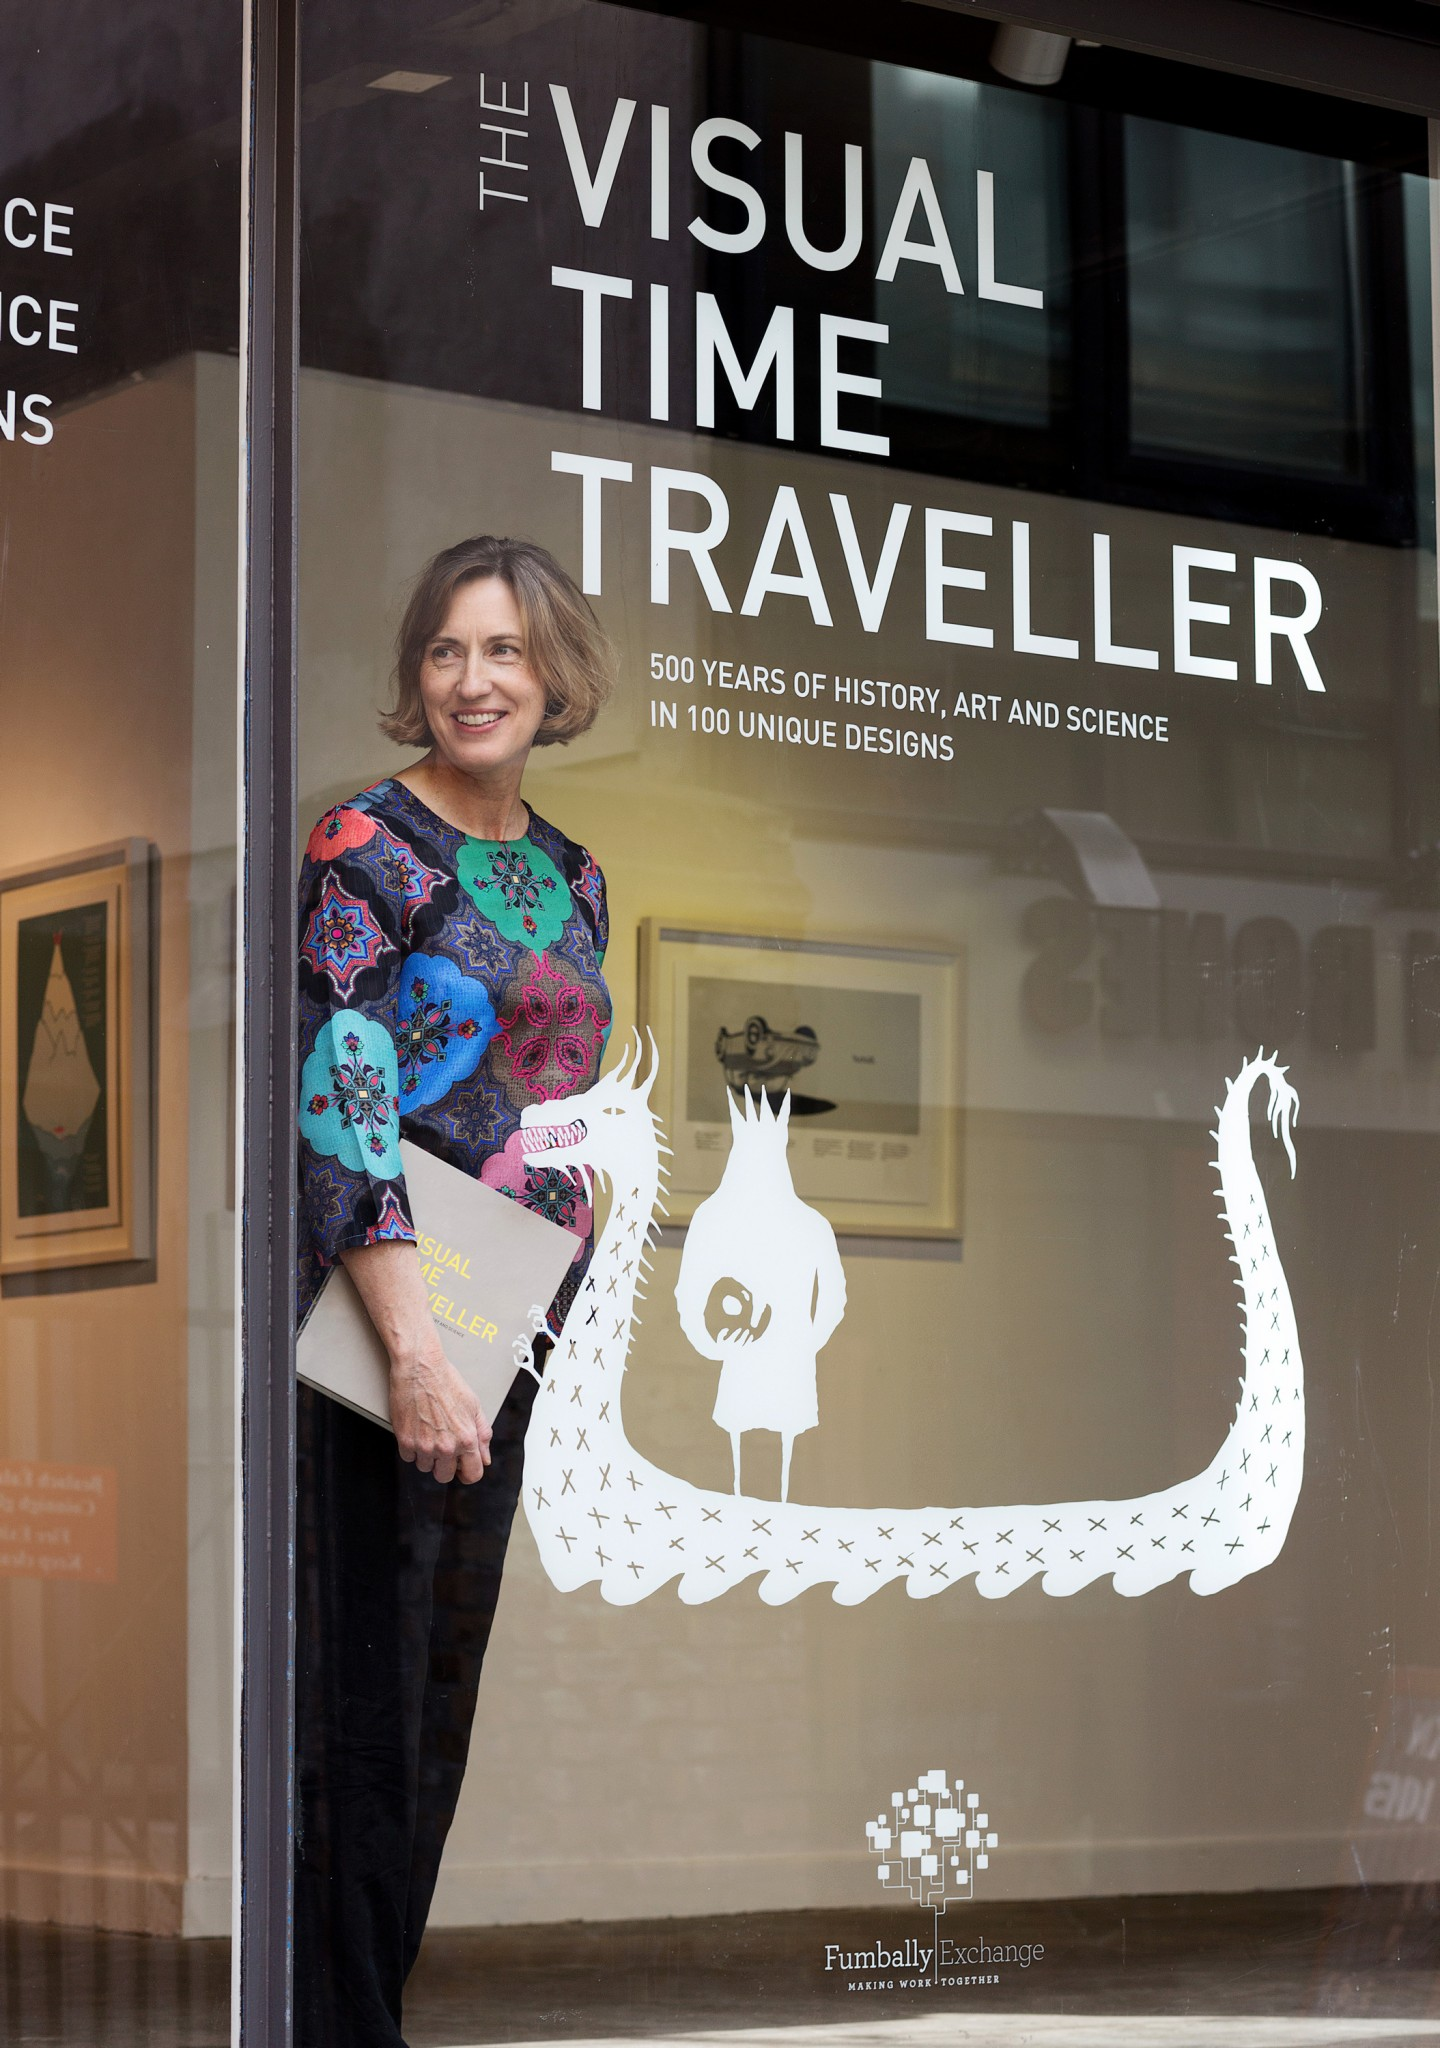 THE VISUAL TIME TRAVELLER - EXHIBITION & POPUP SHOP PHOTOCALL Press Photography, PR Photography, www.1image.ie